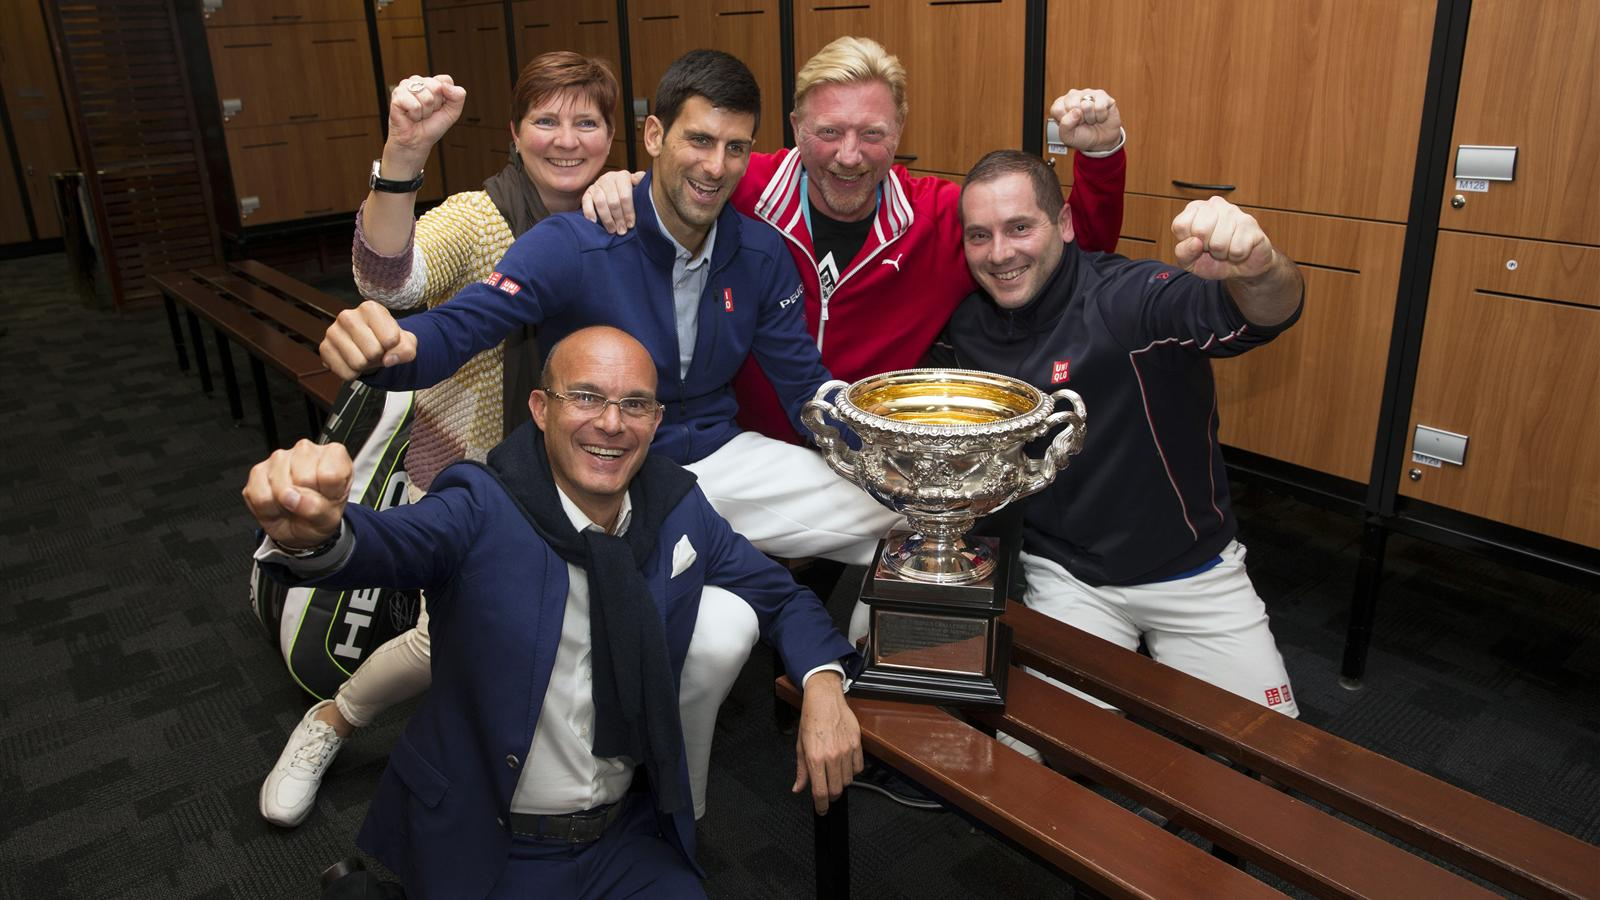 Serbia's Novak Djokovic celebrates with his coach Boris Becker and members of the training staff in the locker room after winning his final match against Britain's Andy Murray at the Australian Open